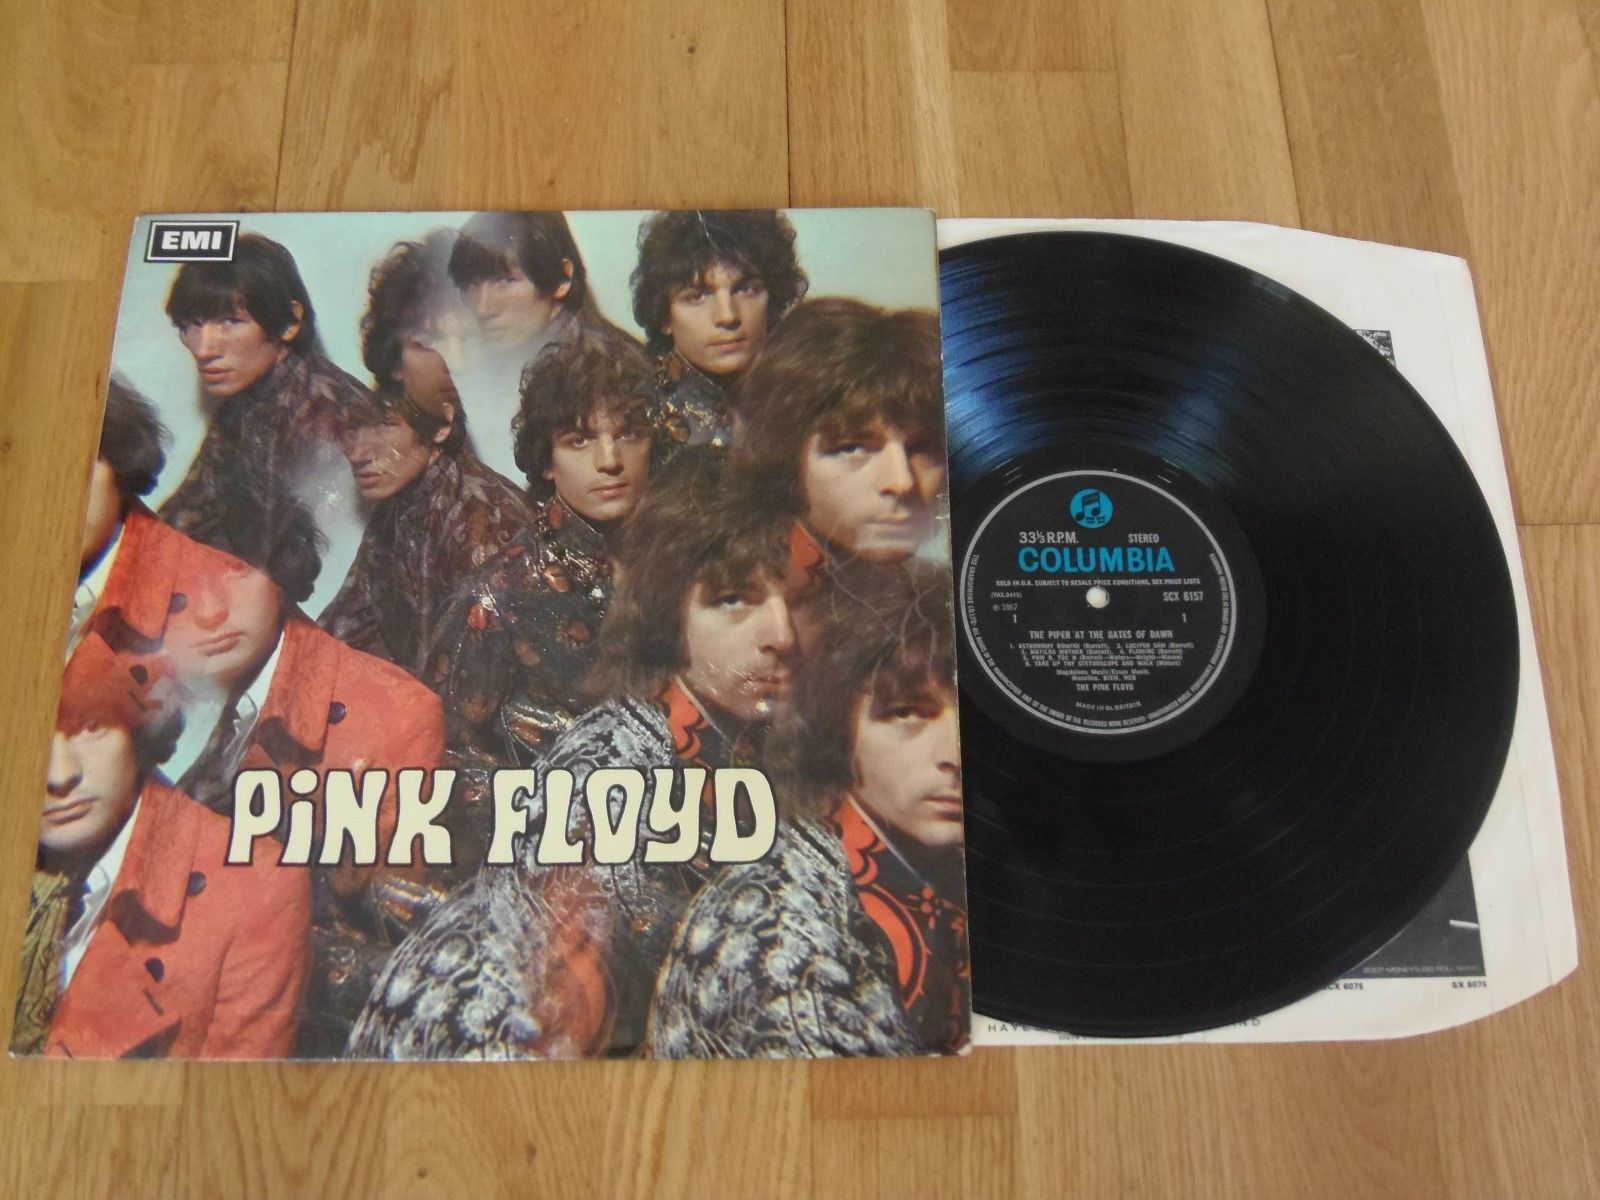 PINK FLOYD PIPER AT THE GATES OF DAWN Blue Columbia SCX 6157 G1/G1 NO 'FUP' EX+